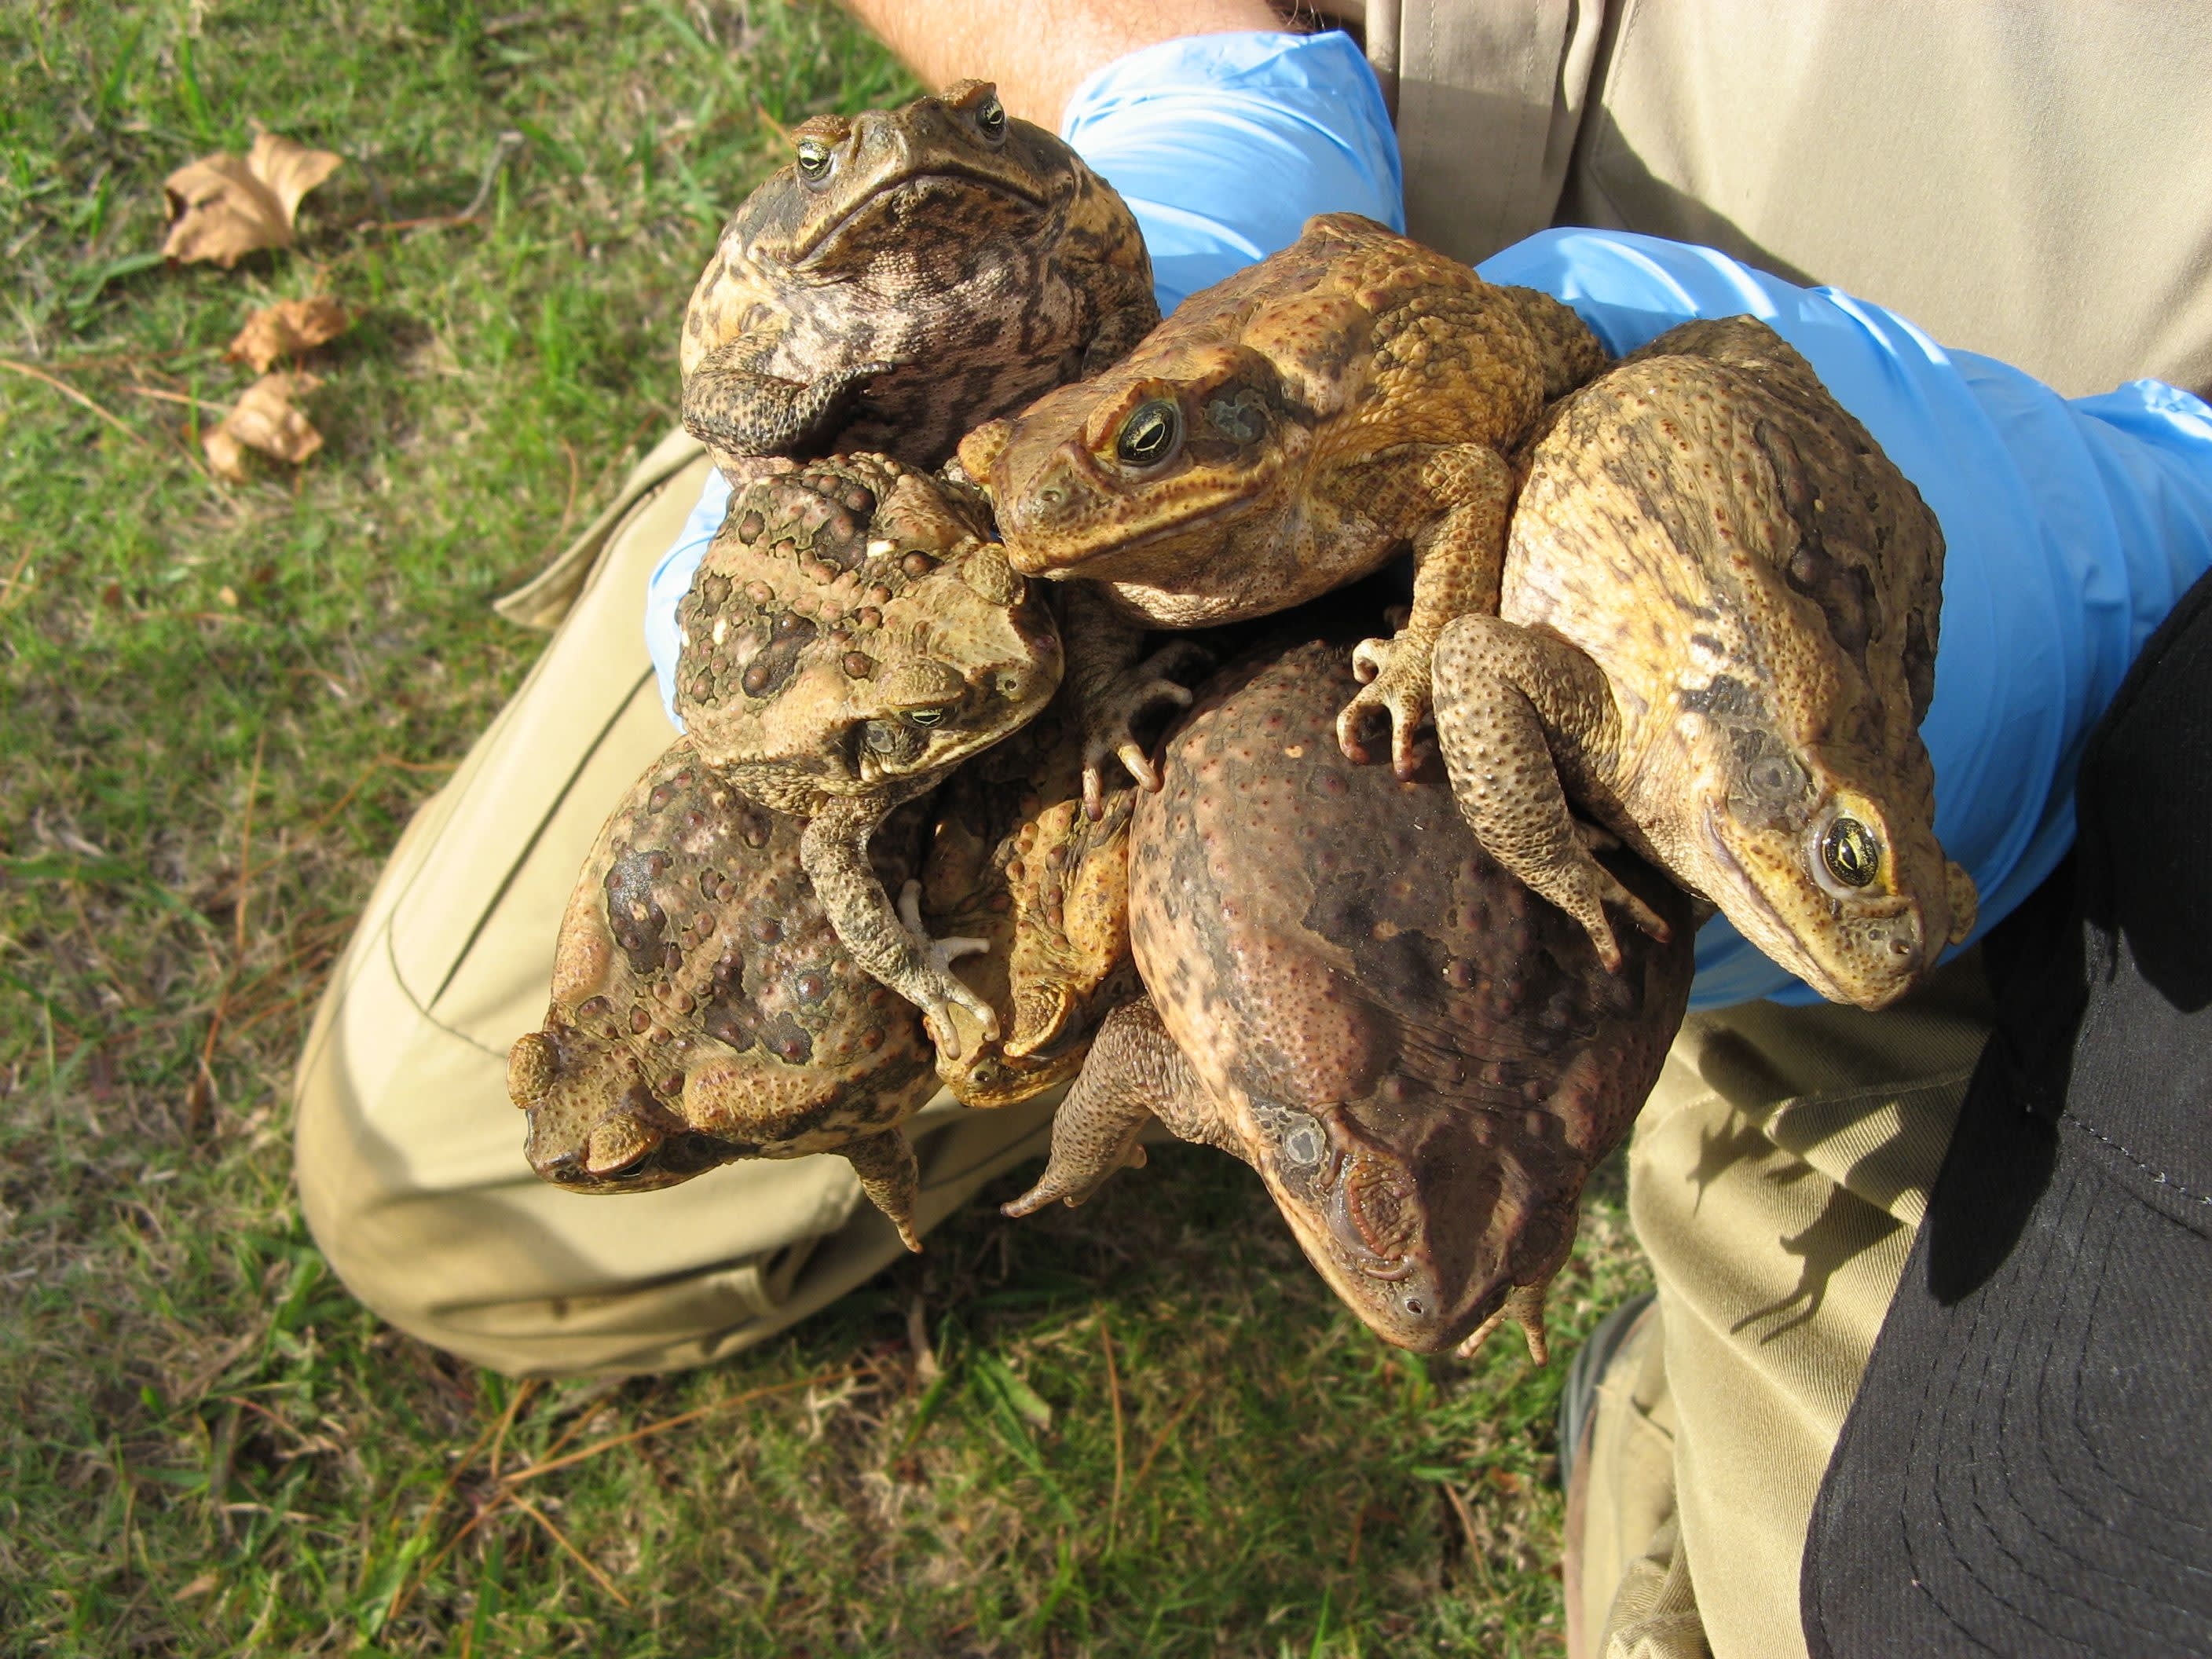 754b23967cee7 Australia steps up battle against toxic cane toads - Nikkei Asian Review